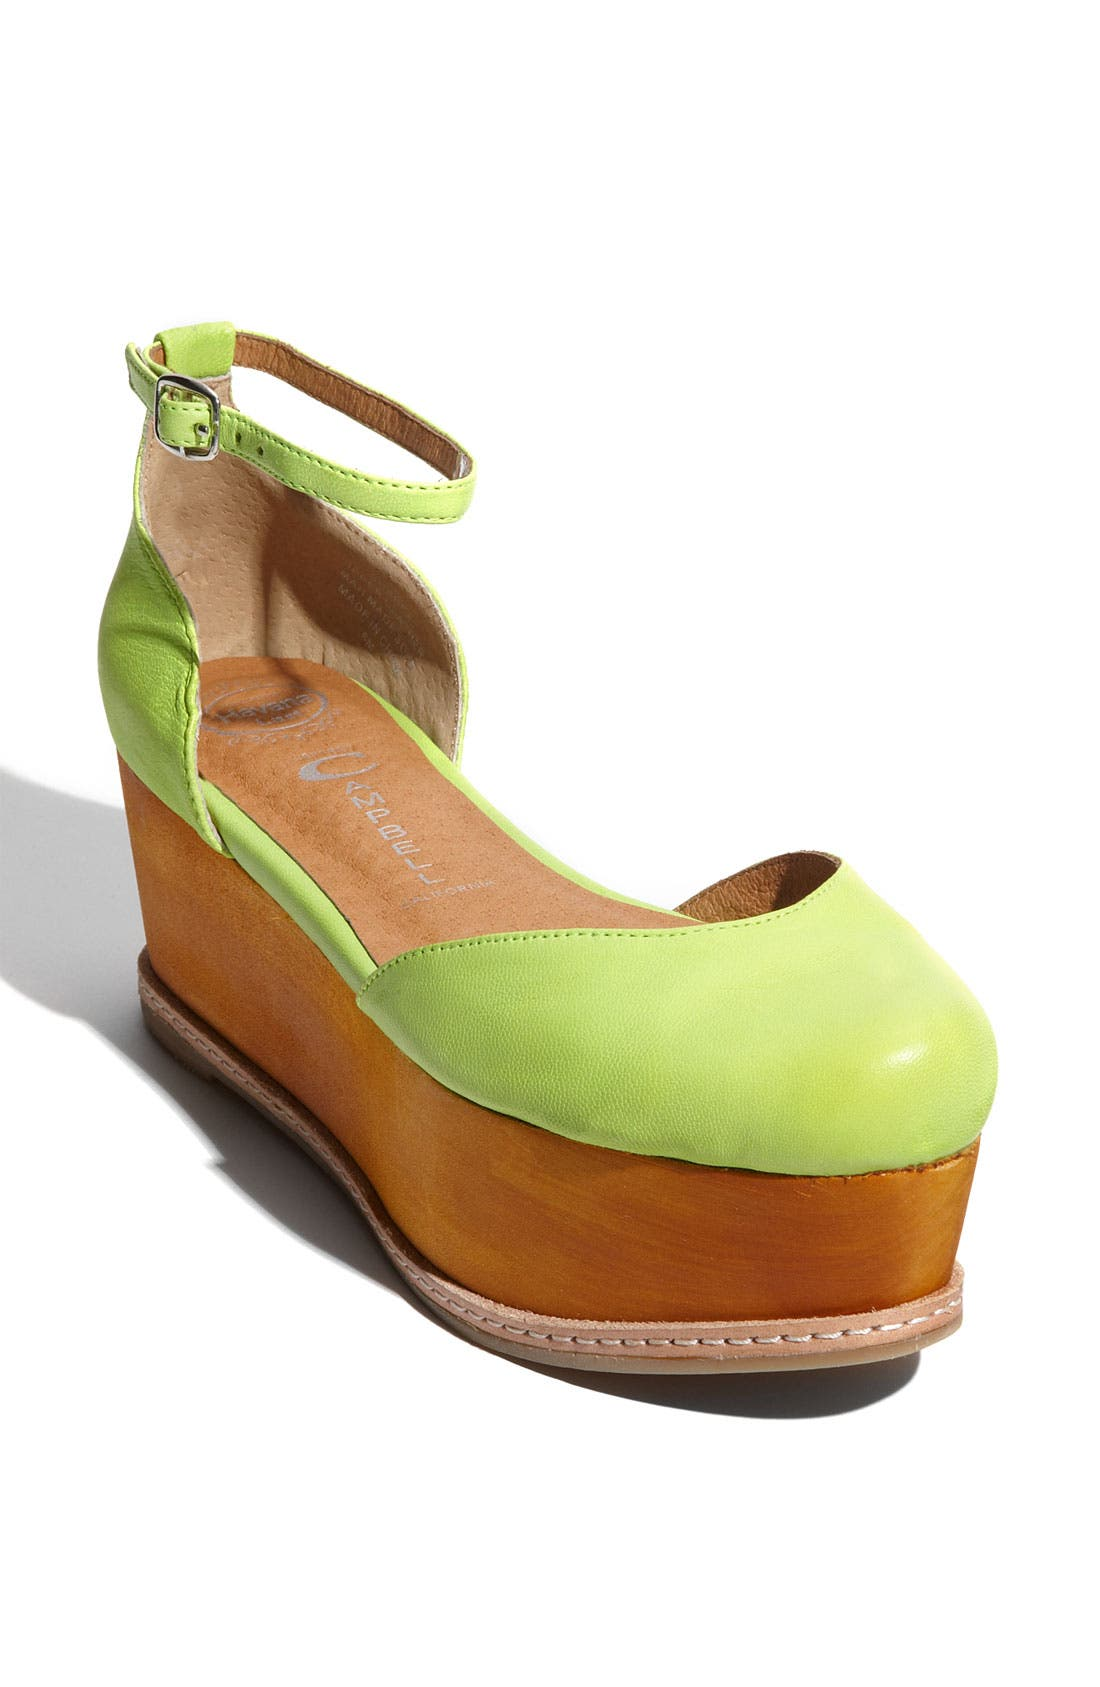 Alternate Image 1 Selected - Jeffrey Campbell 'Suebee' Sandal